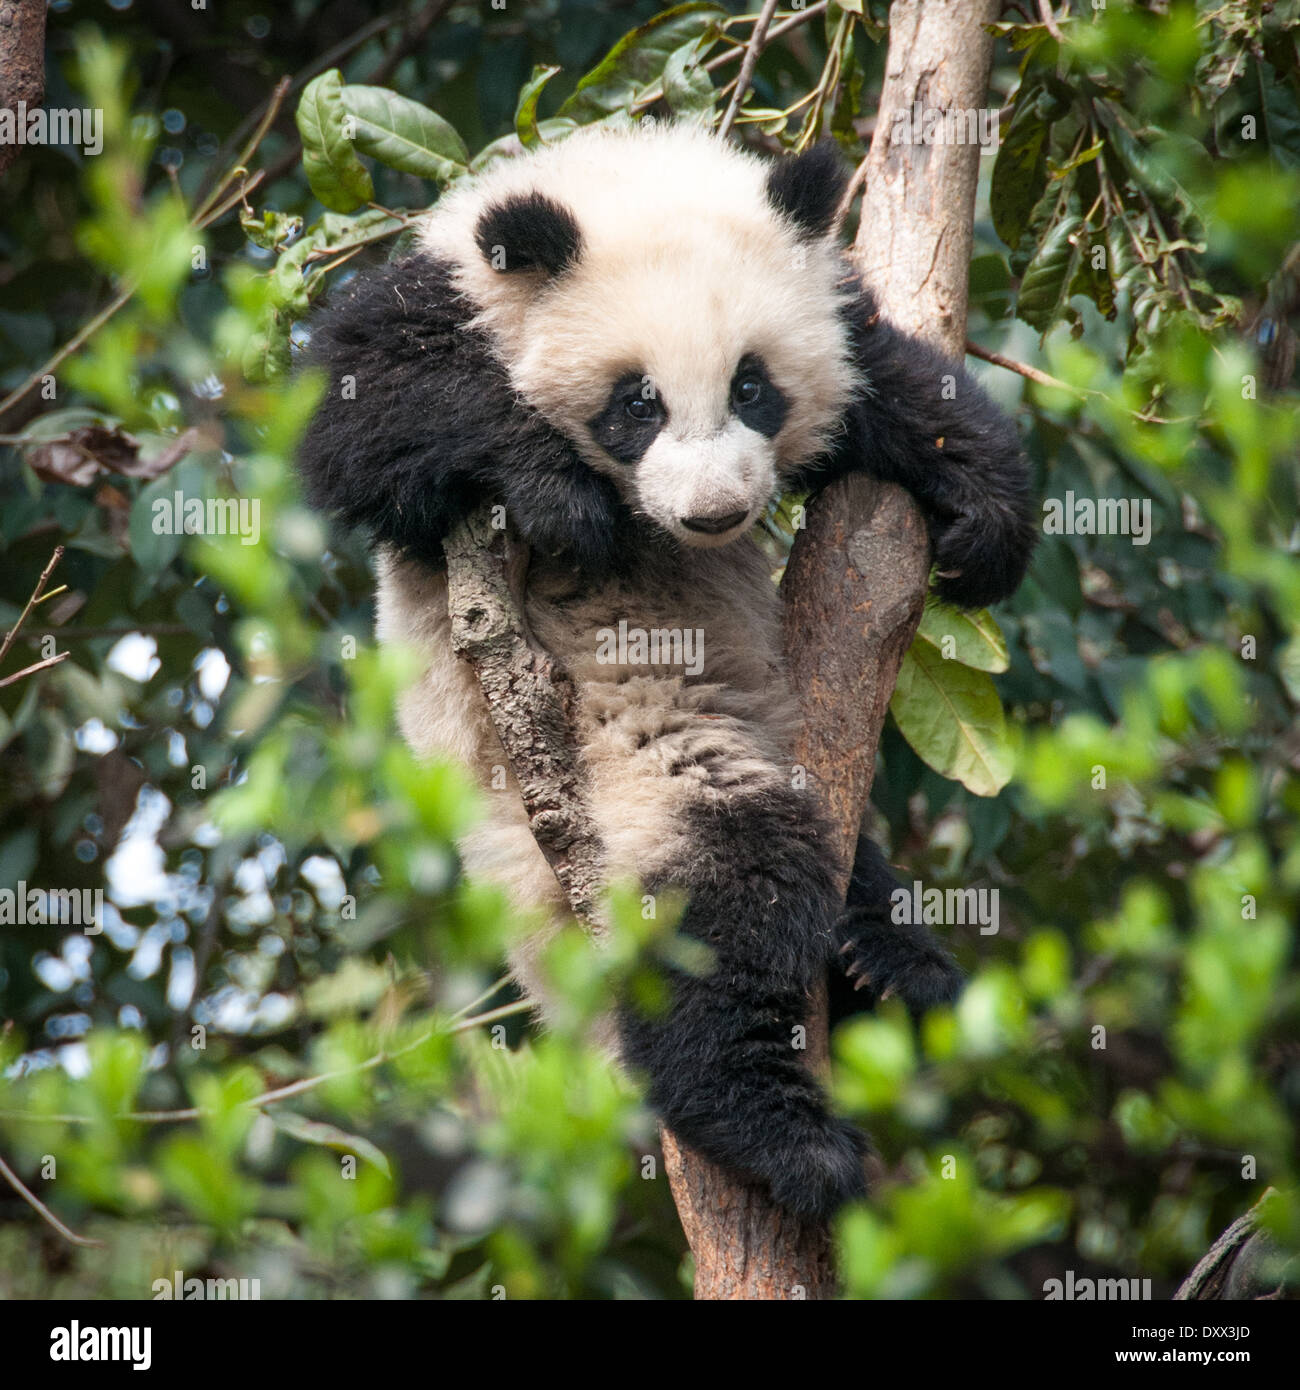 A giant panda perched in a tree China - Stock Image